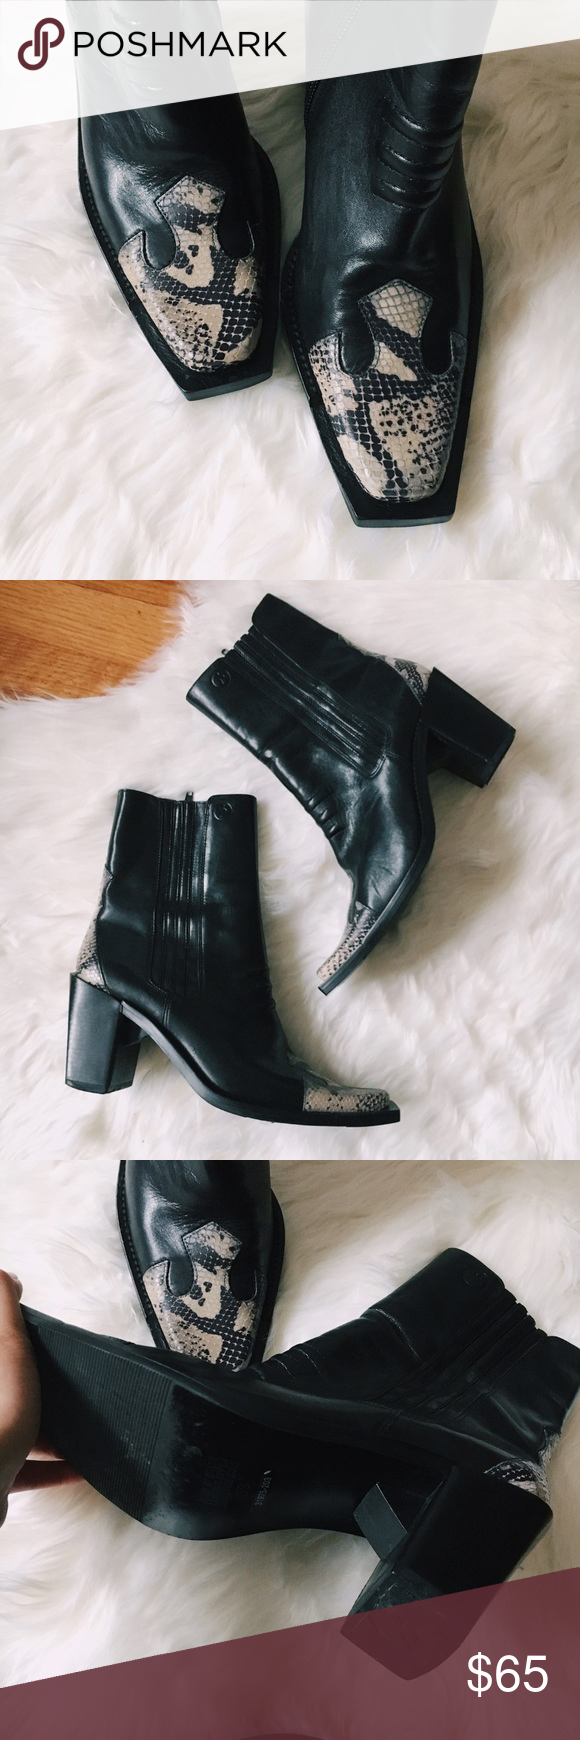 Vintage Western Boots Flawless condition vintage western boot with super cute detailing on the toe & heel. 100% leather. Limitless ways to style these bad boys 💘 Shoes